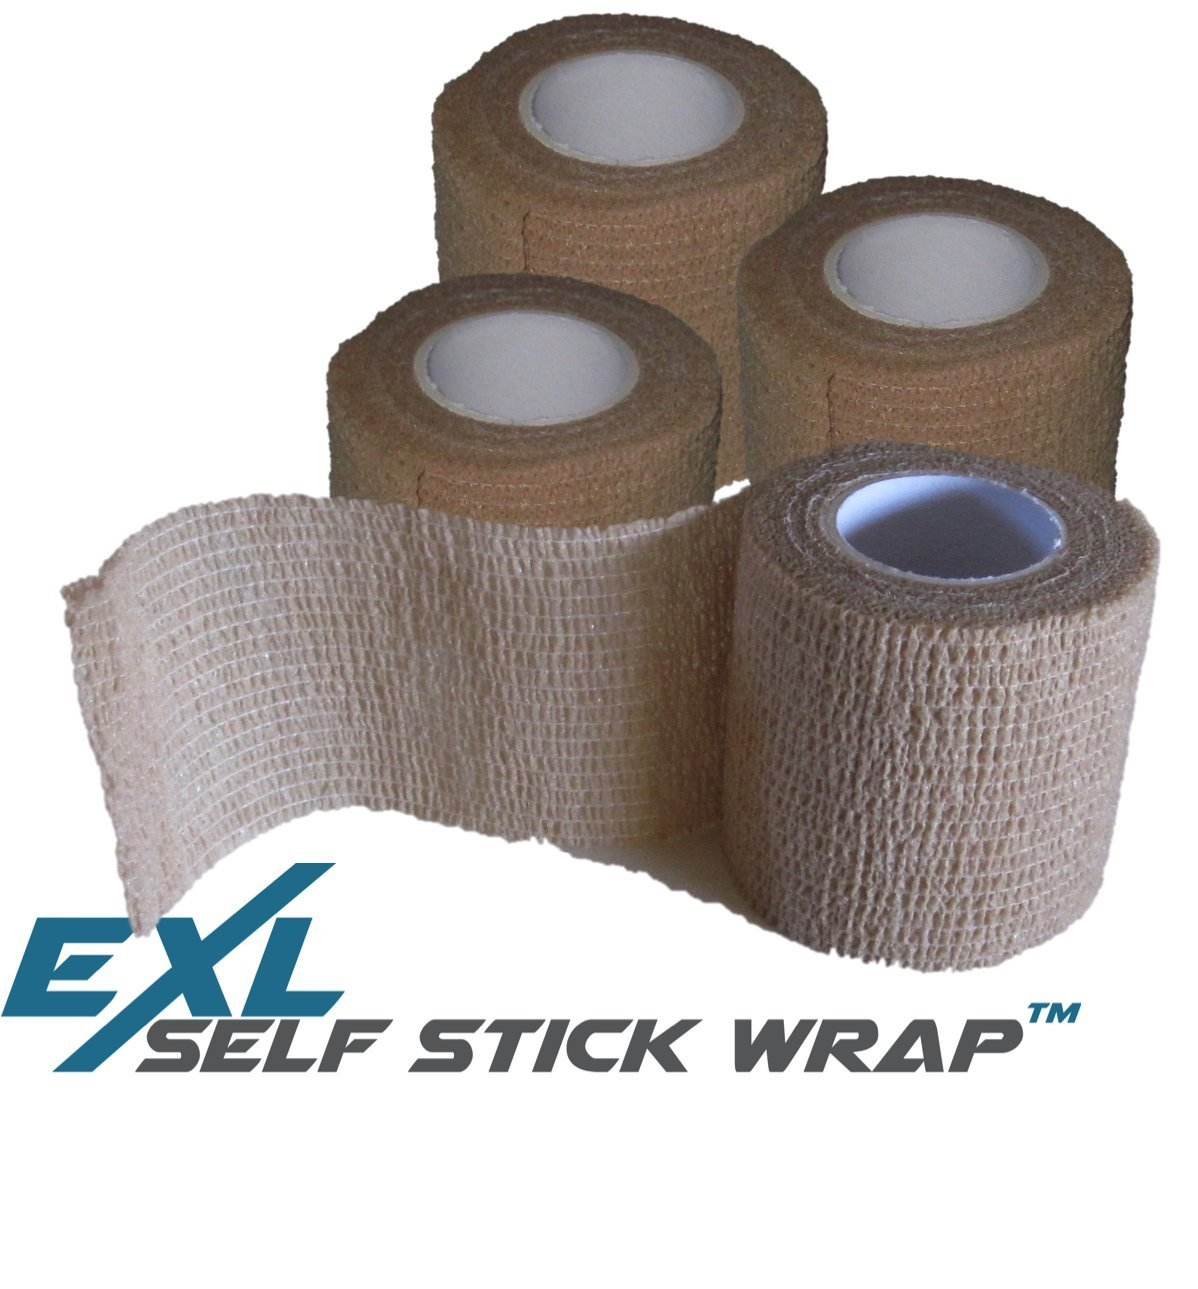 ExL Performance Self-Stick Wrap - 4-Pack - Flexible Non-Stick, Self-Adherent, Pressure Wrap Gauze Bandage - Latex-Free - Large Roll (15 feet long and 2 inches wide) (Beige/Tan)